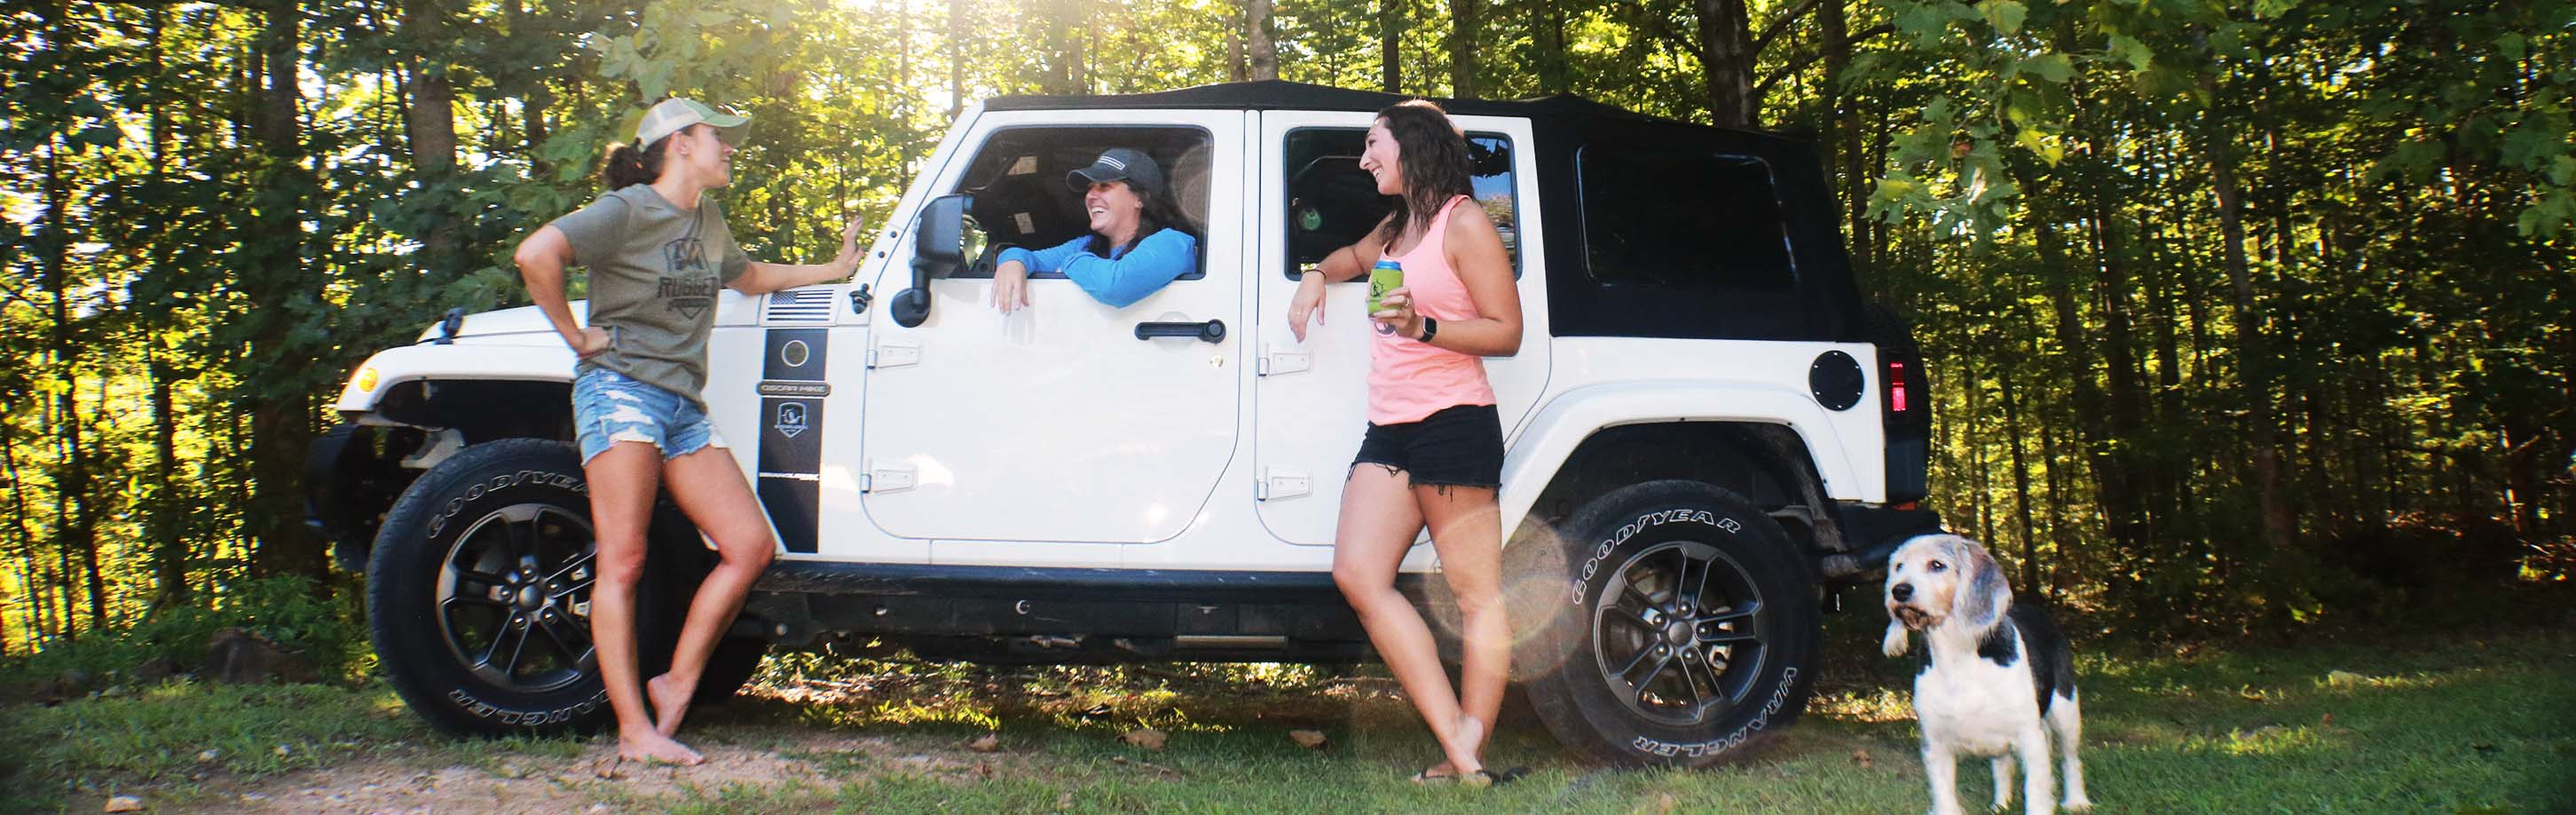 Careers @ busyXploring - Girls standing infront of white Jeep wearing nature inspired apparel from busy exploring